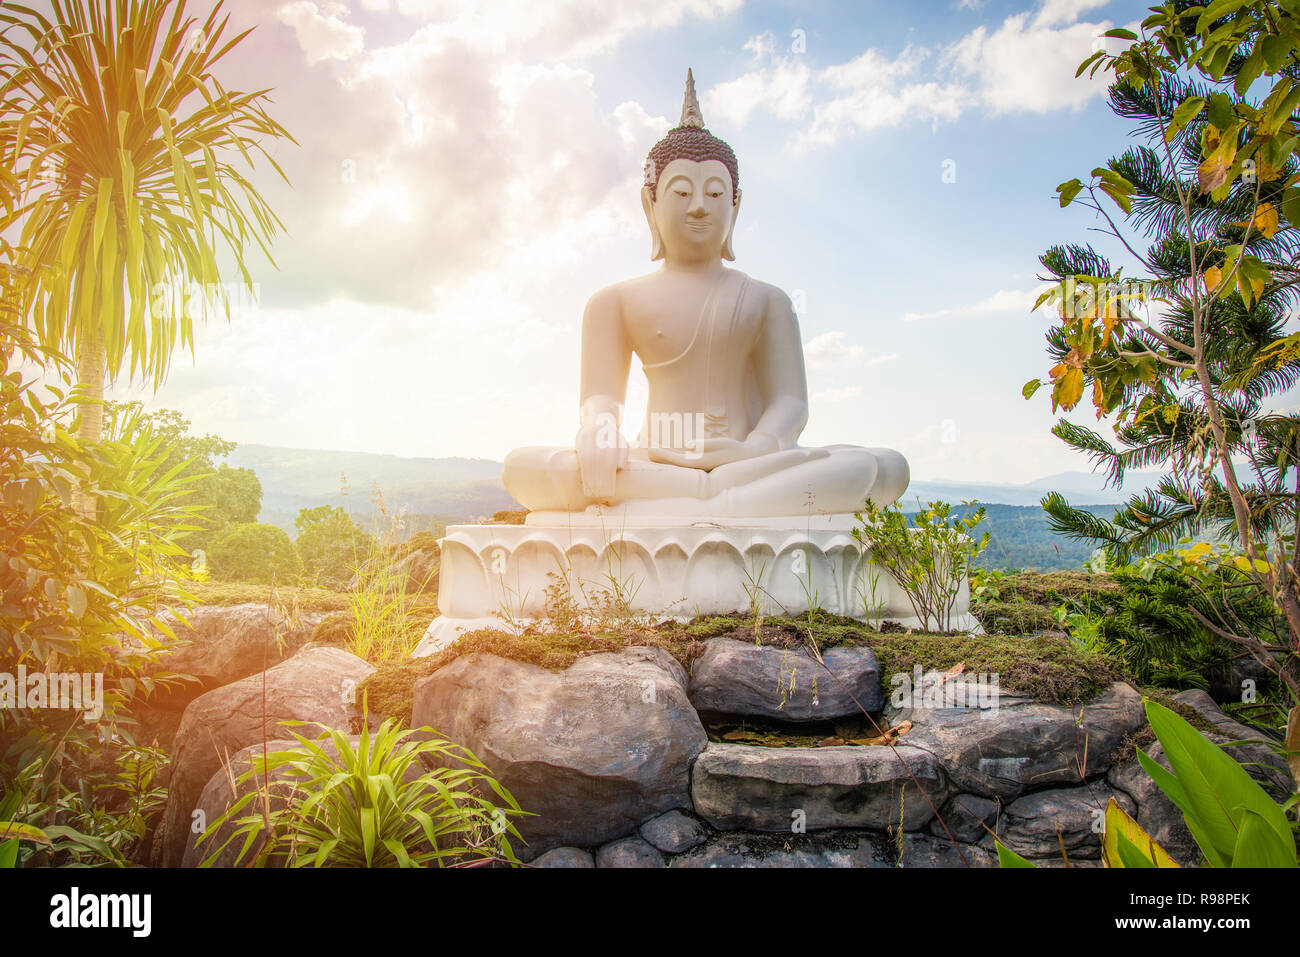 Garden Buddha Statue The Buddha Statue White On The Rock Hill Landscape Statue Buddha Sitting On Outdoor Bright Day With Tree And Sky Background Stock Photo Alamy